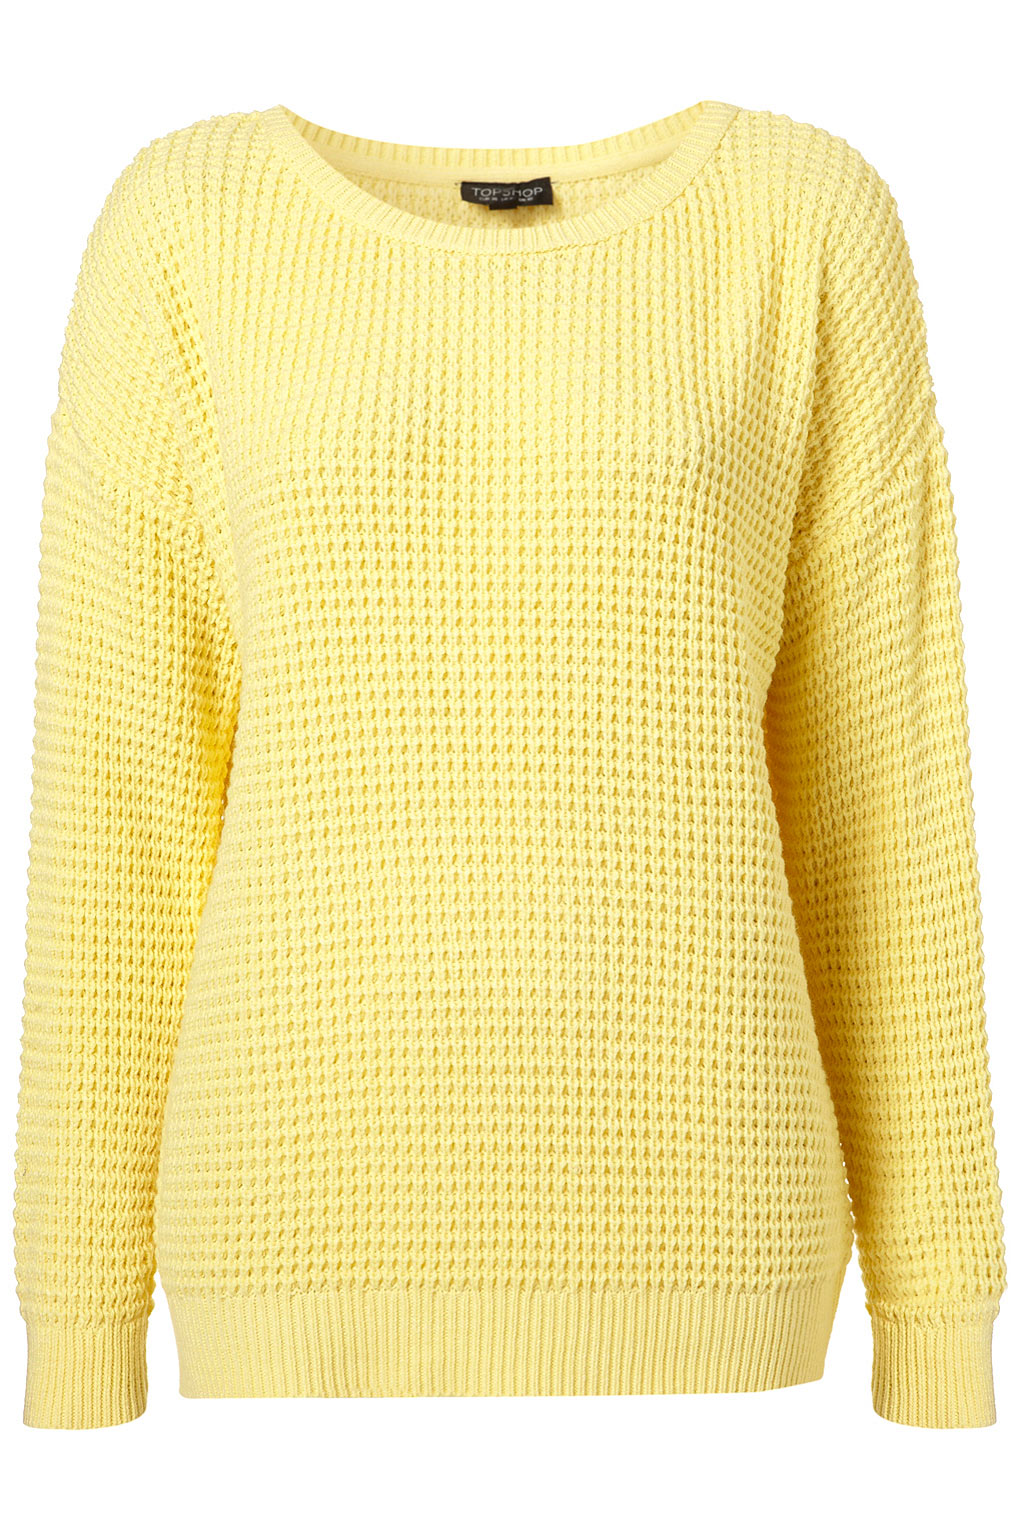 Jumper in a soft knit with a slightly wider neckline and long sleeves. Ribbing around the neckline, cuffs and hem.